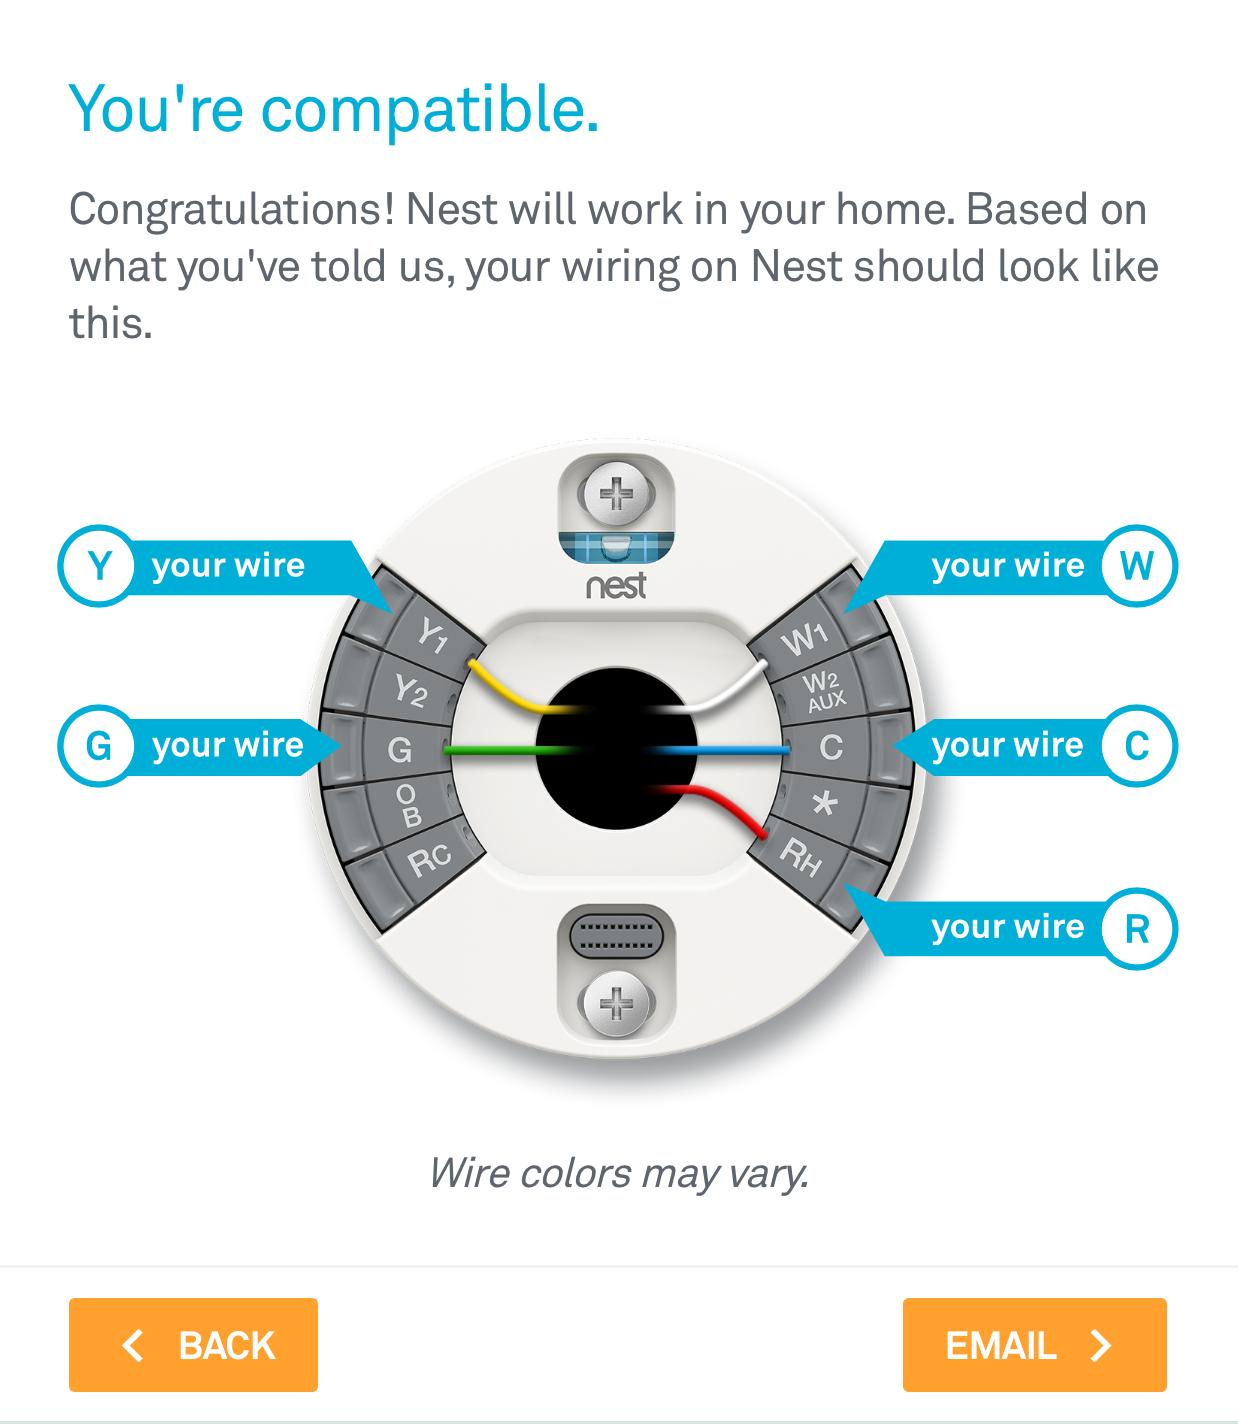 Nest 3 Thermostat Wiring Diagram Heat Pump With Emergency Heat - Wiring Diagram For Heat Pumps For Nest